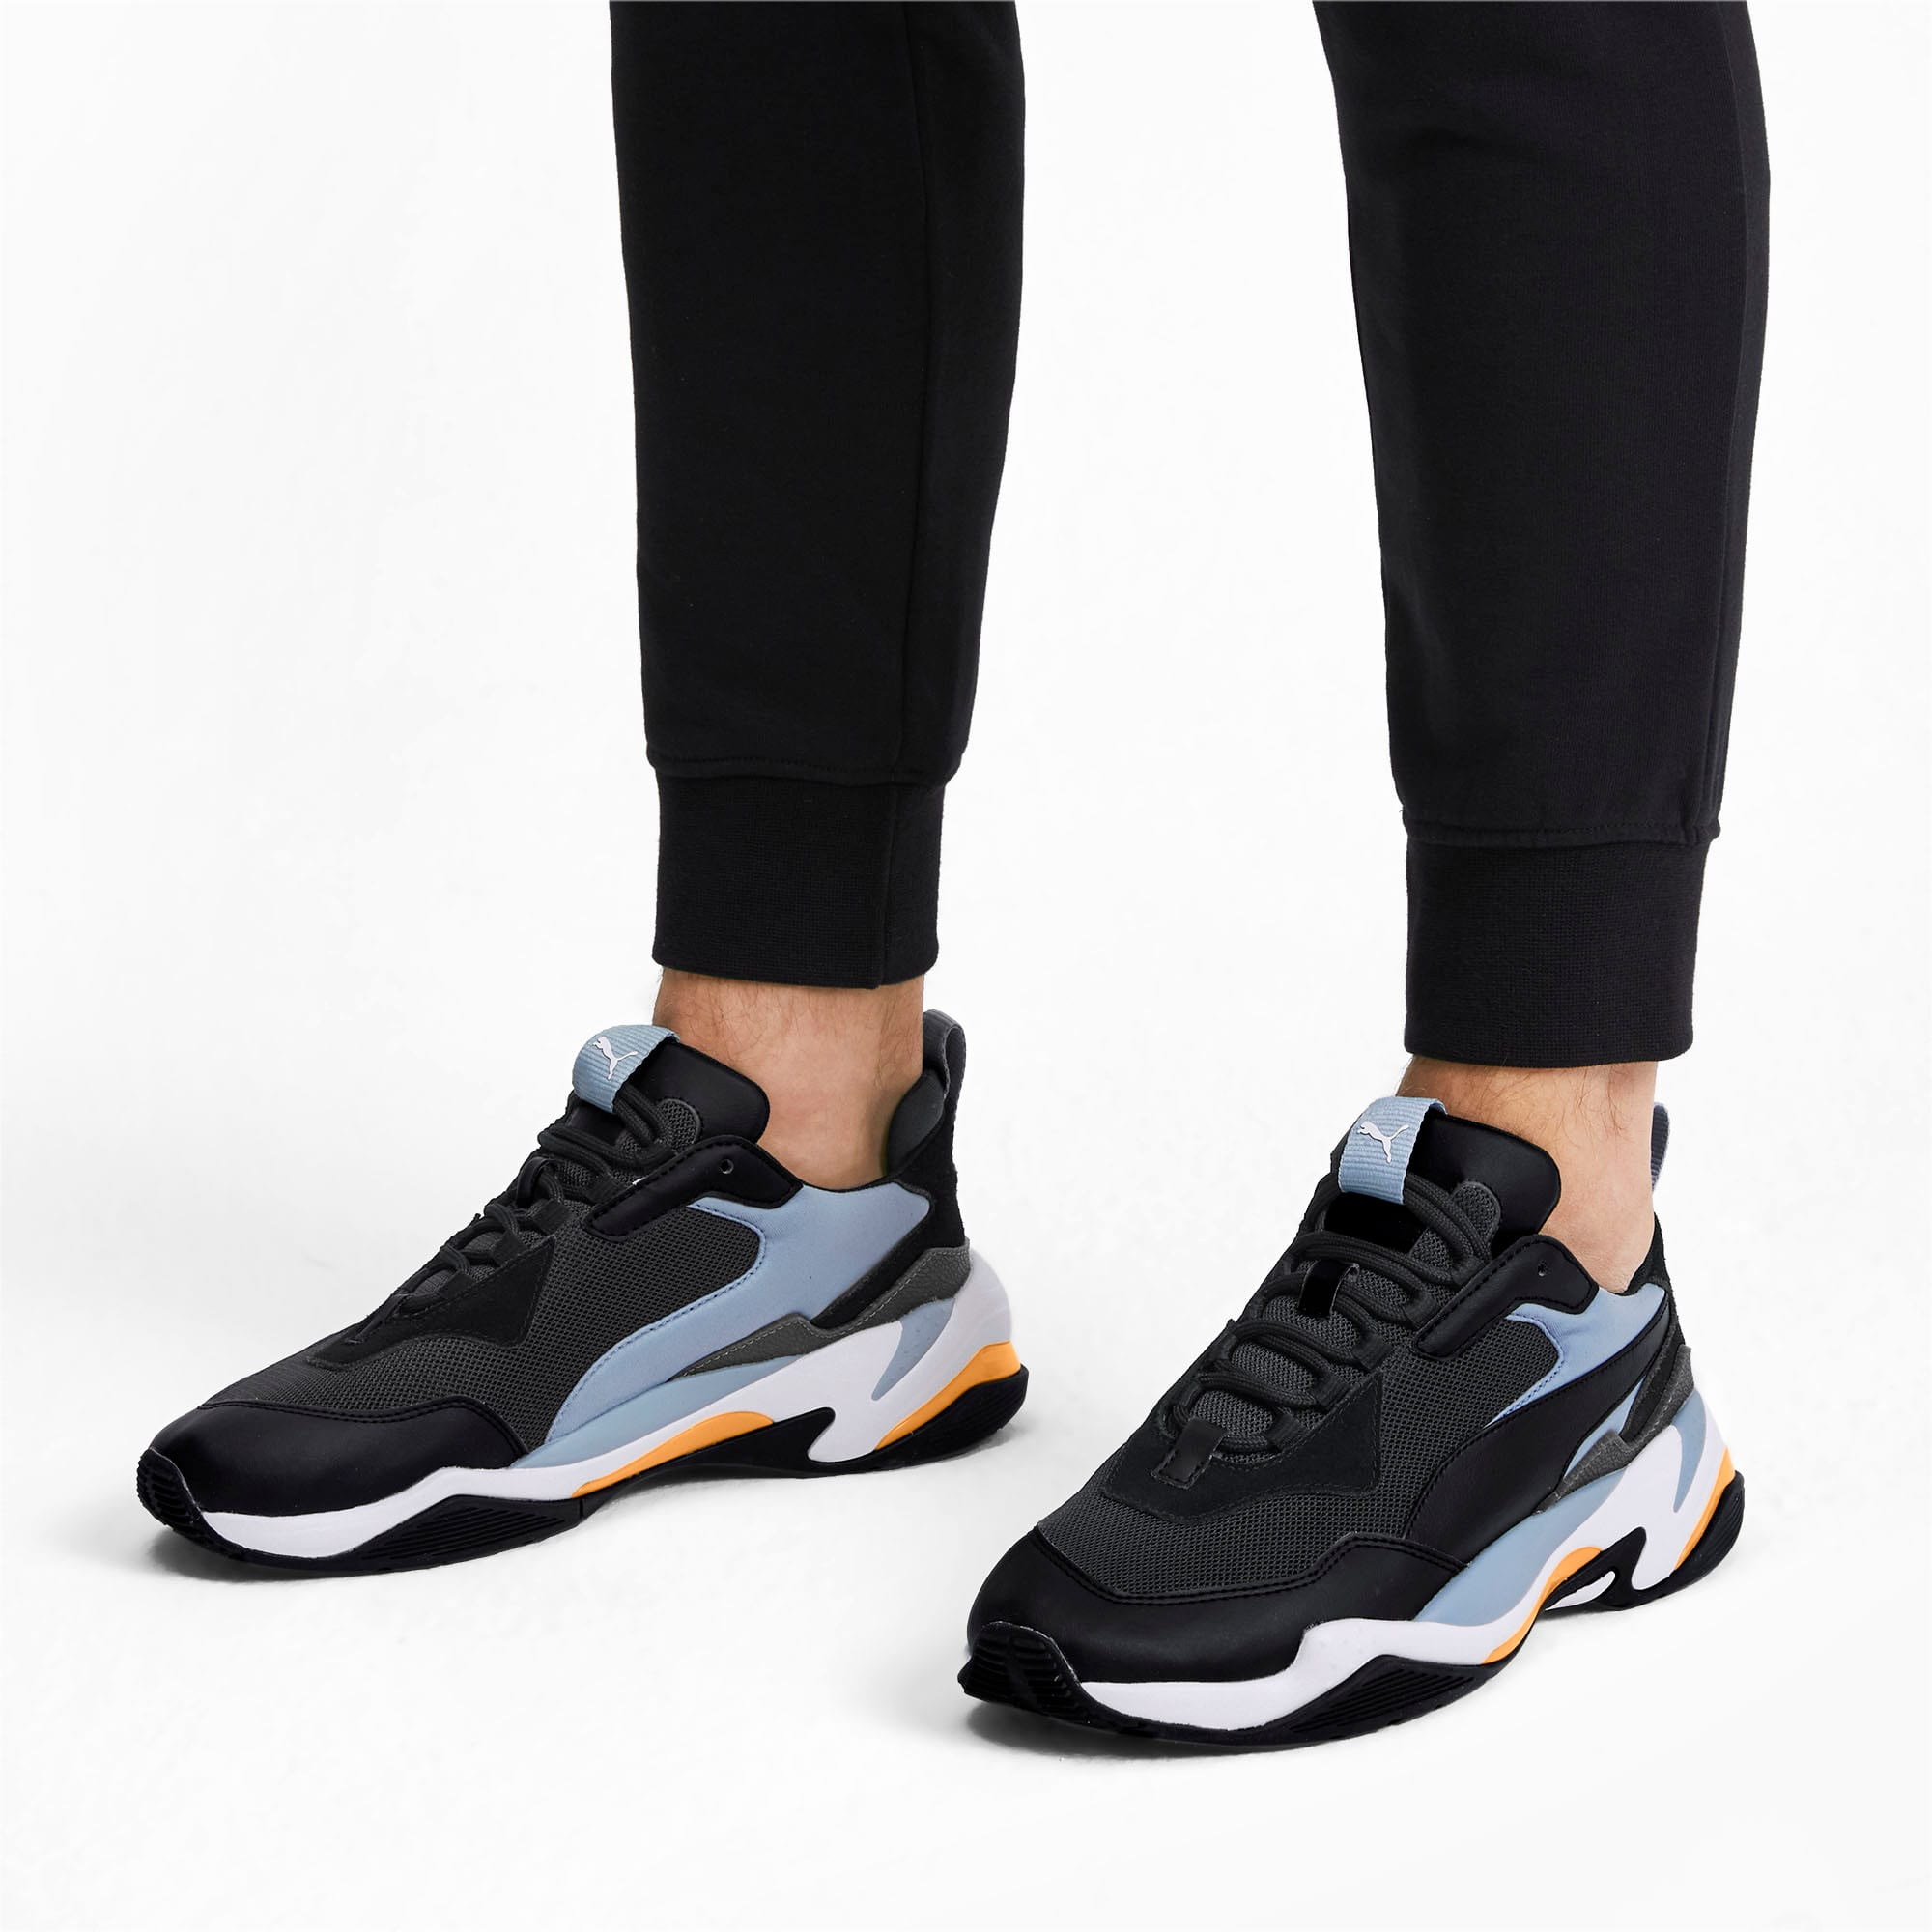 super popular wide selection of designs superior quality Thunder Fashion 2.0 Trainers